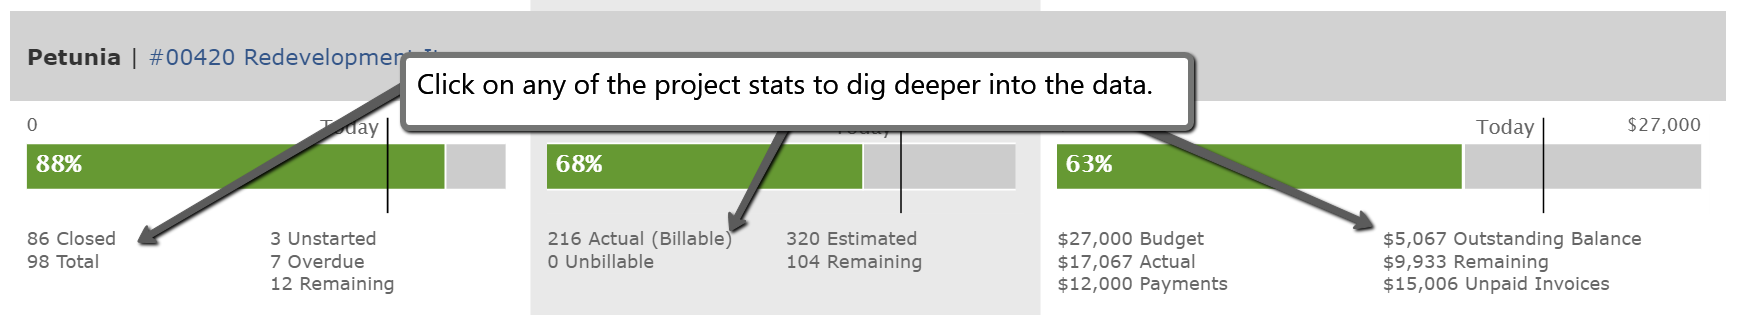 Click on project stats to dig deeper